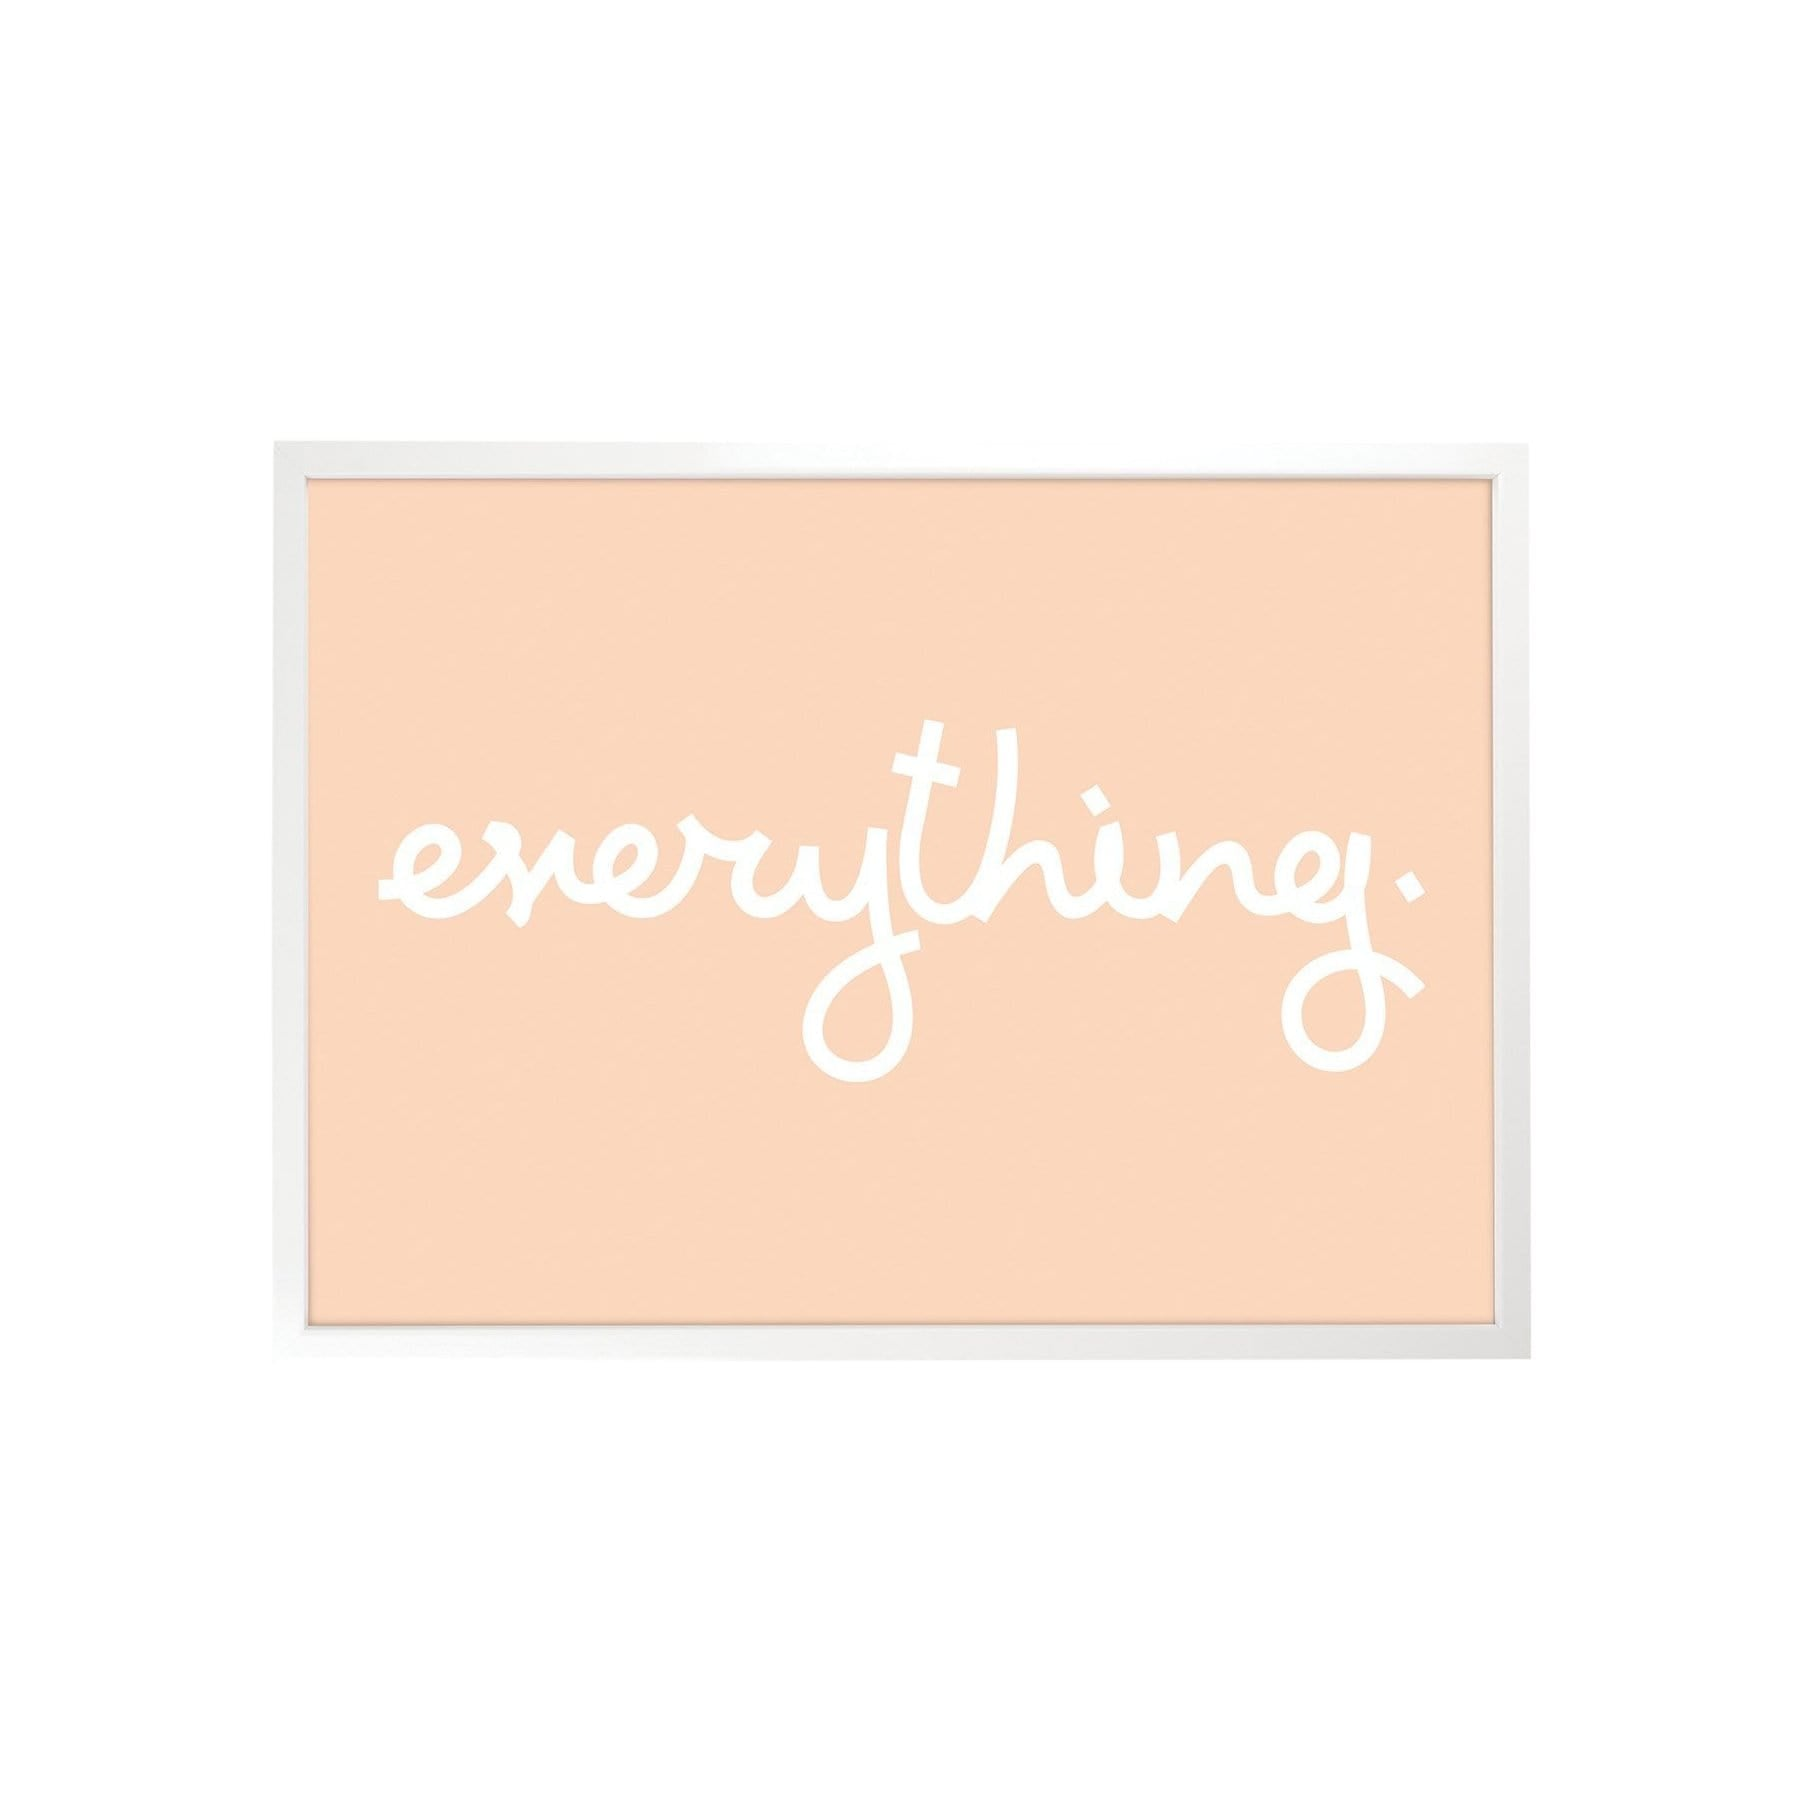 Tom Pigeon Photography + Prints Everything Art Print